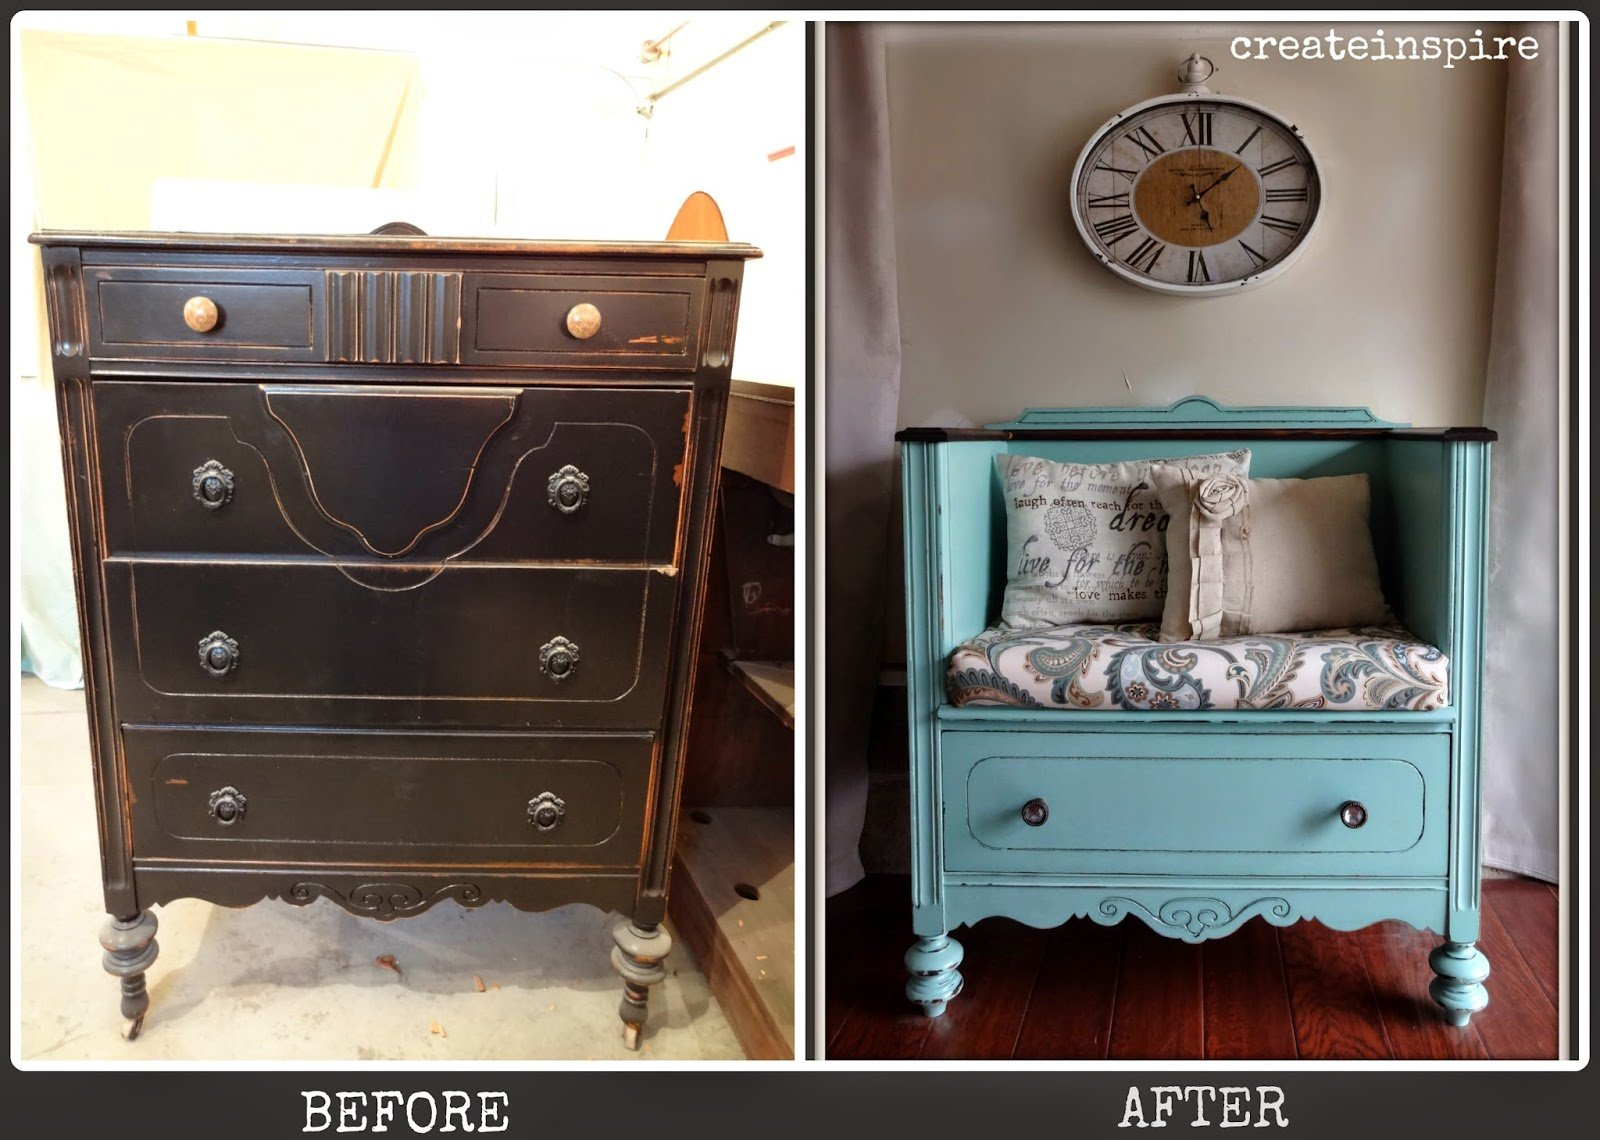 16 Upcycled Furniture Ideas To Give Old Furnitures New